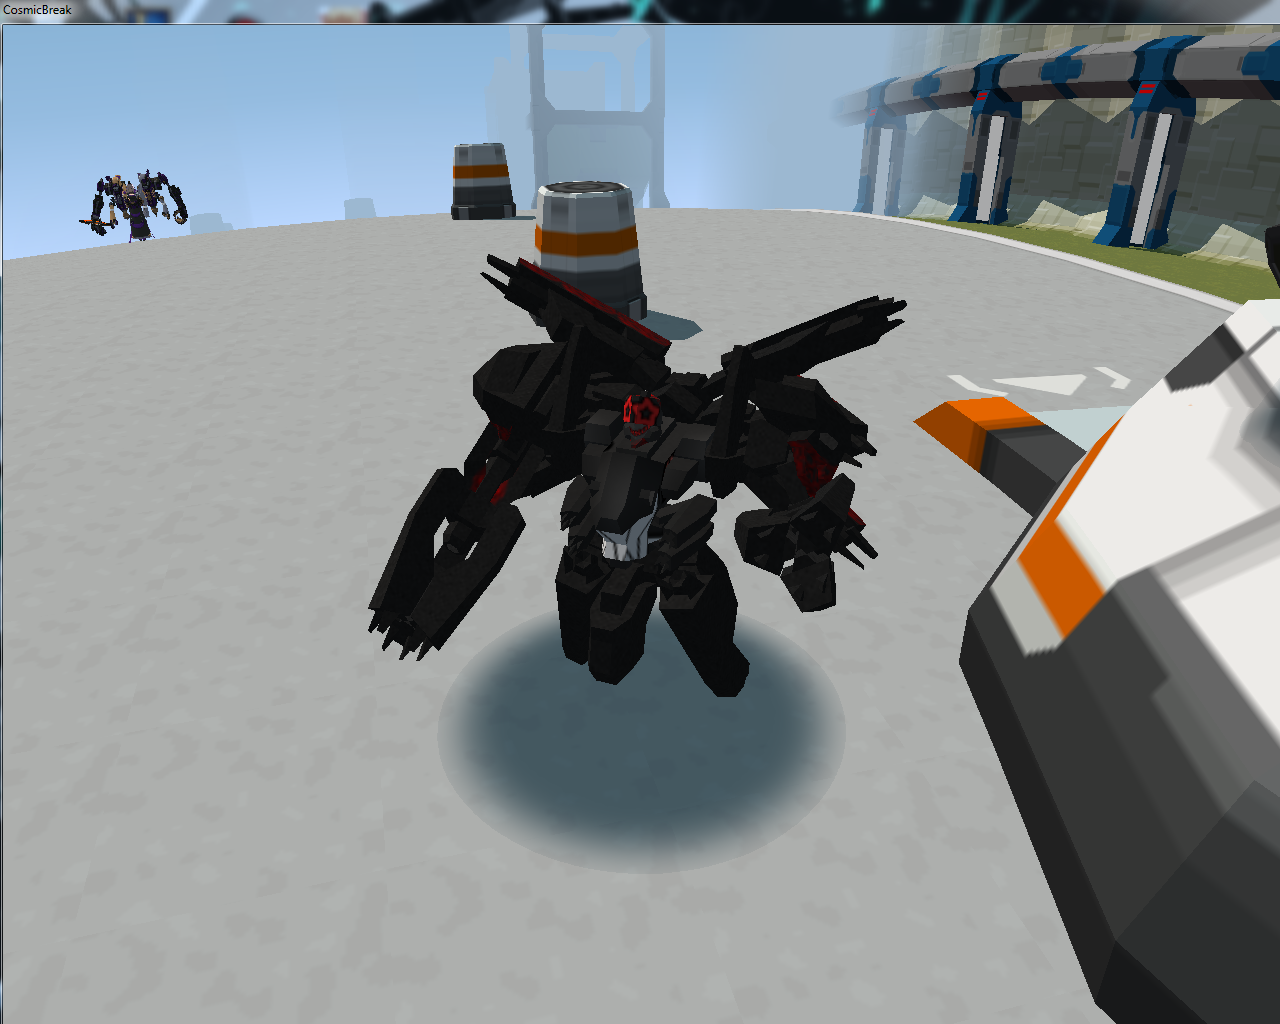 Most random thing you've seen or done today on CB? - Page 4 Reike